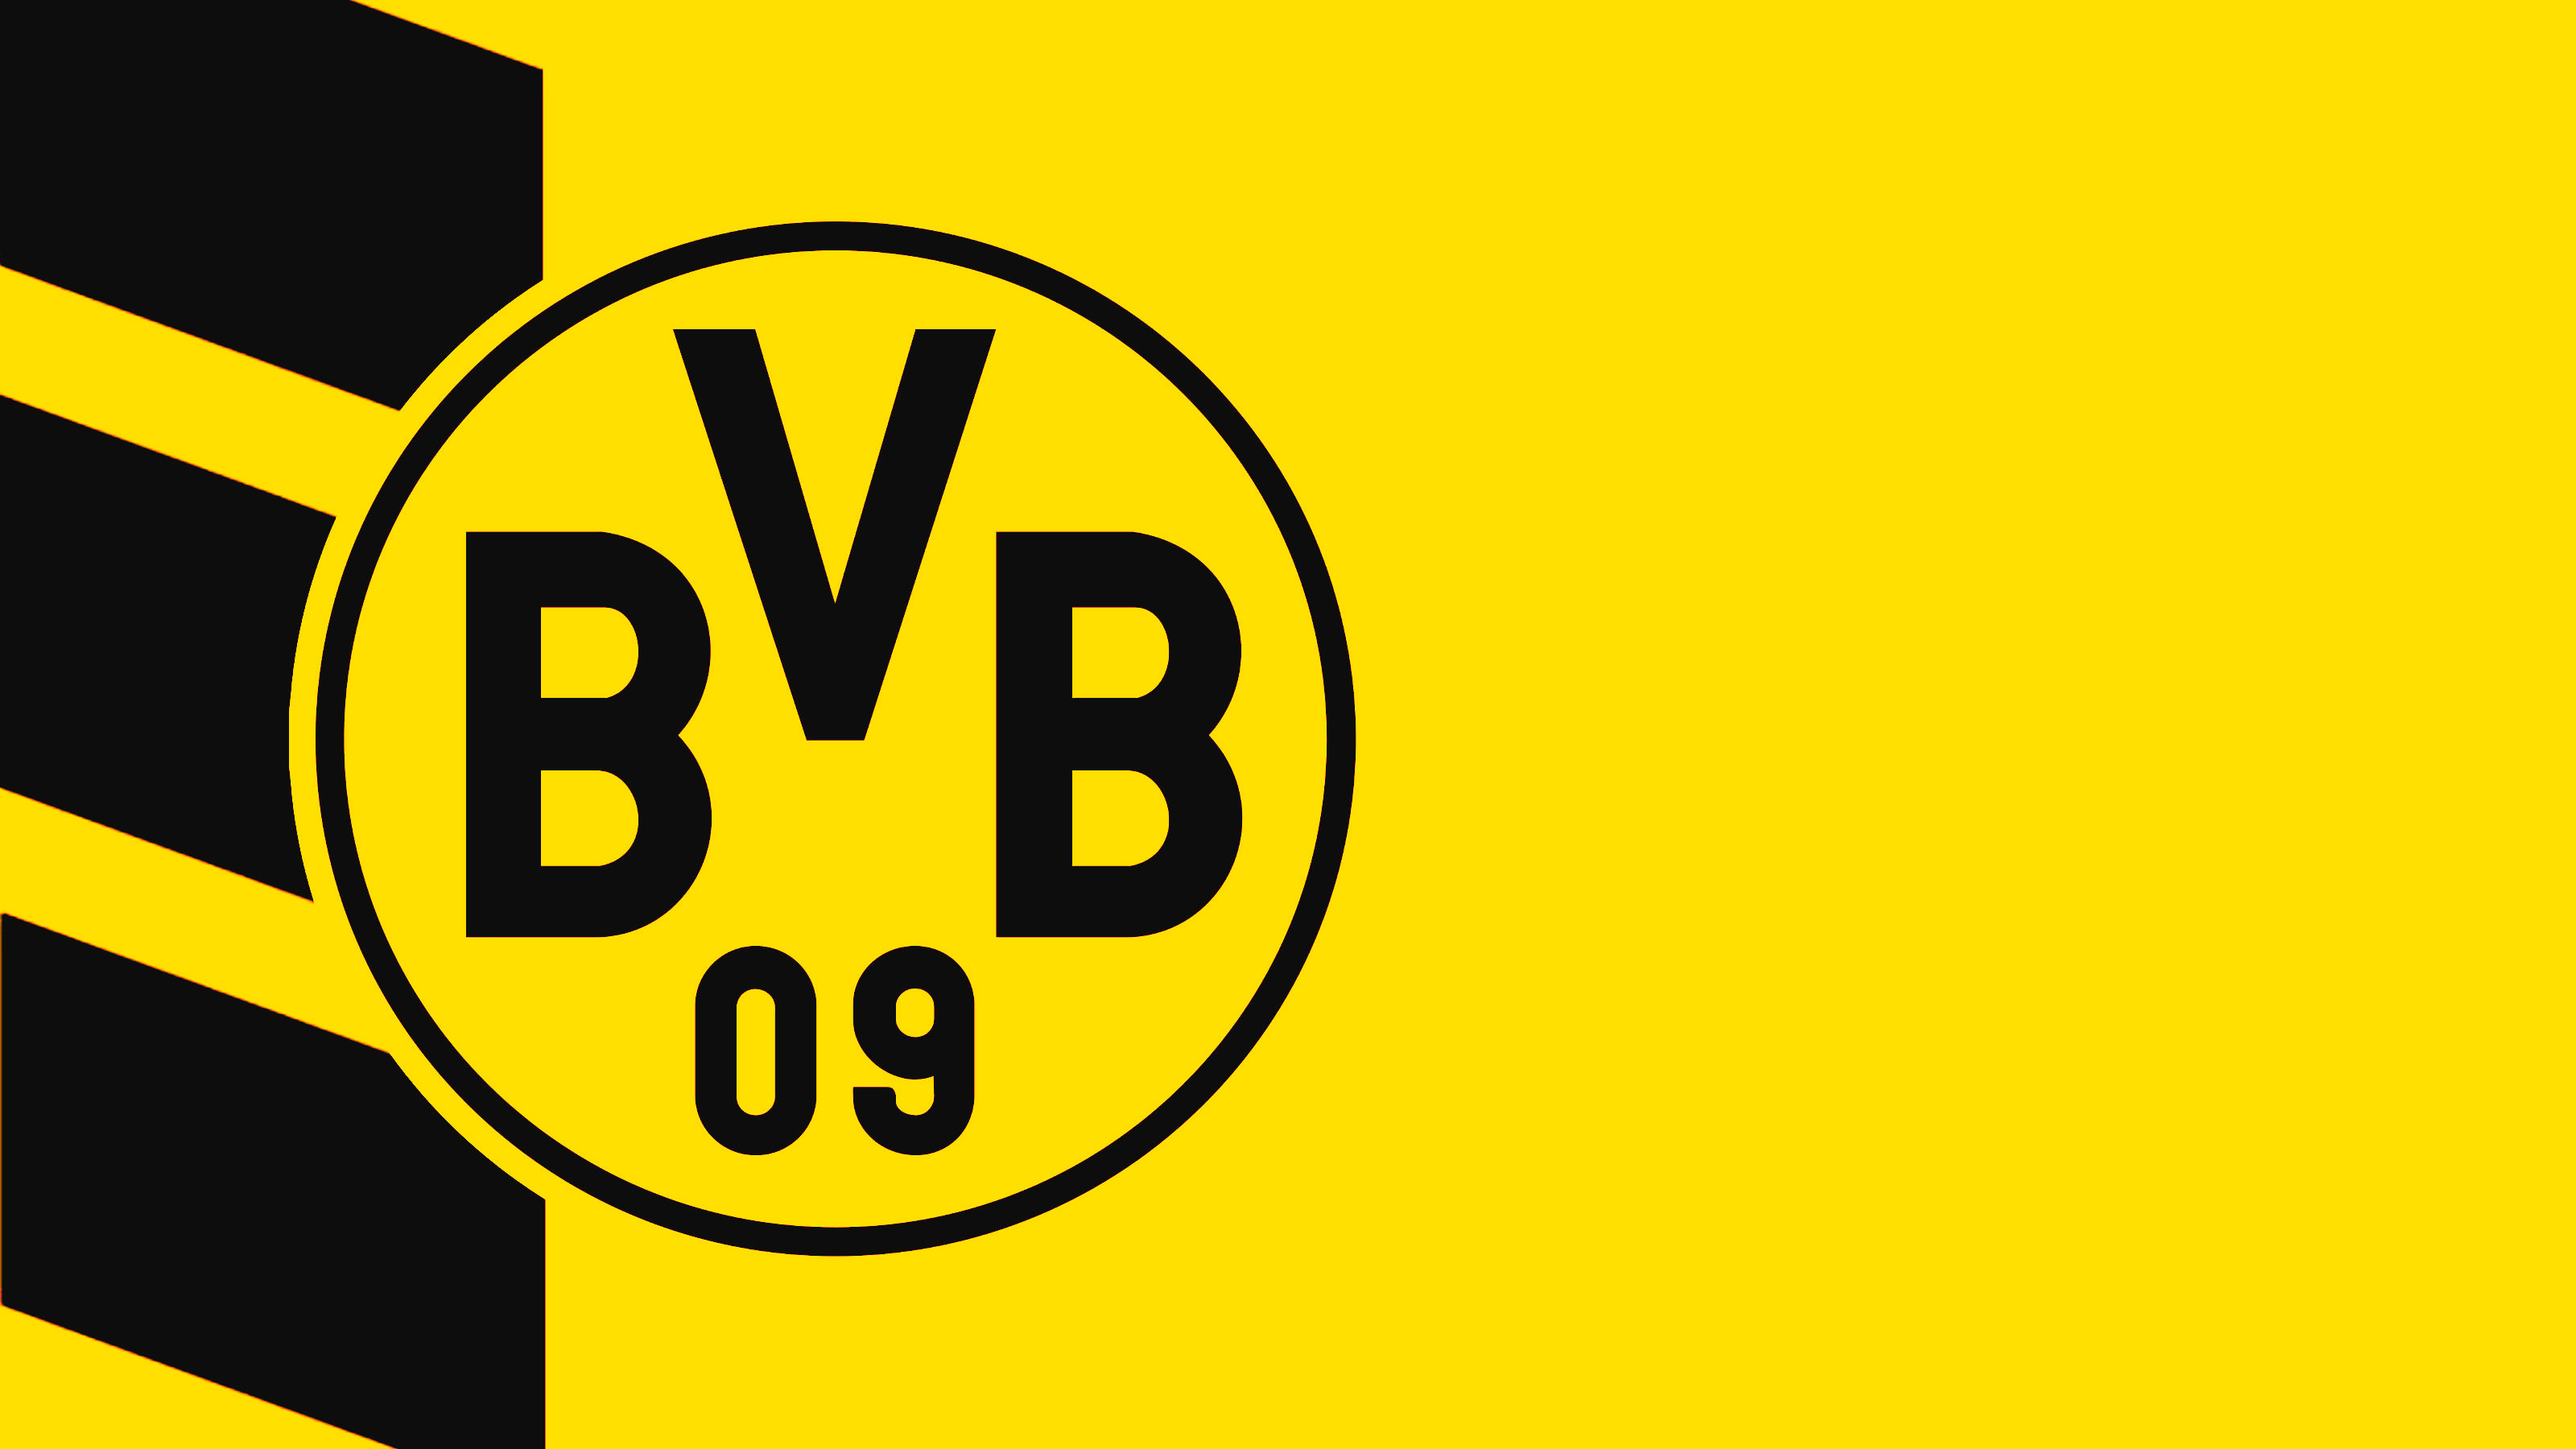 50 Borussia Dortmund HD Wallpapers Background Images   Wallpaper 3200x1800